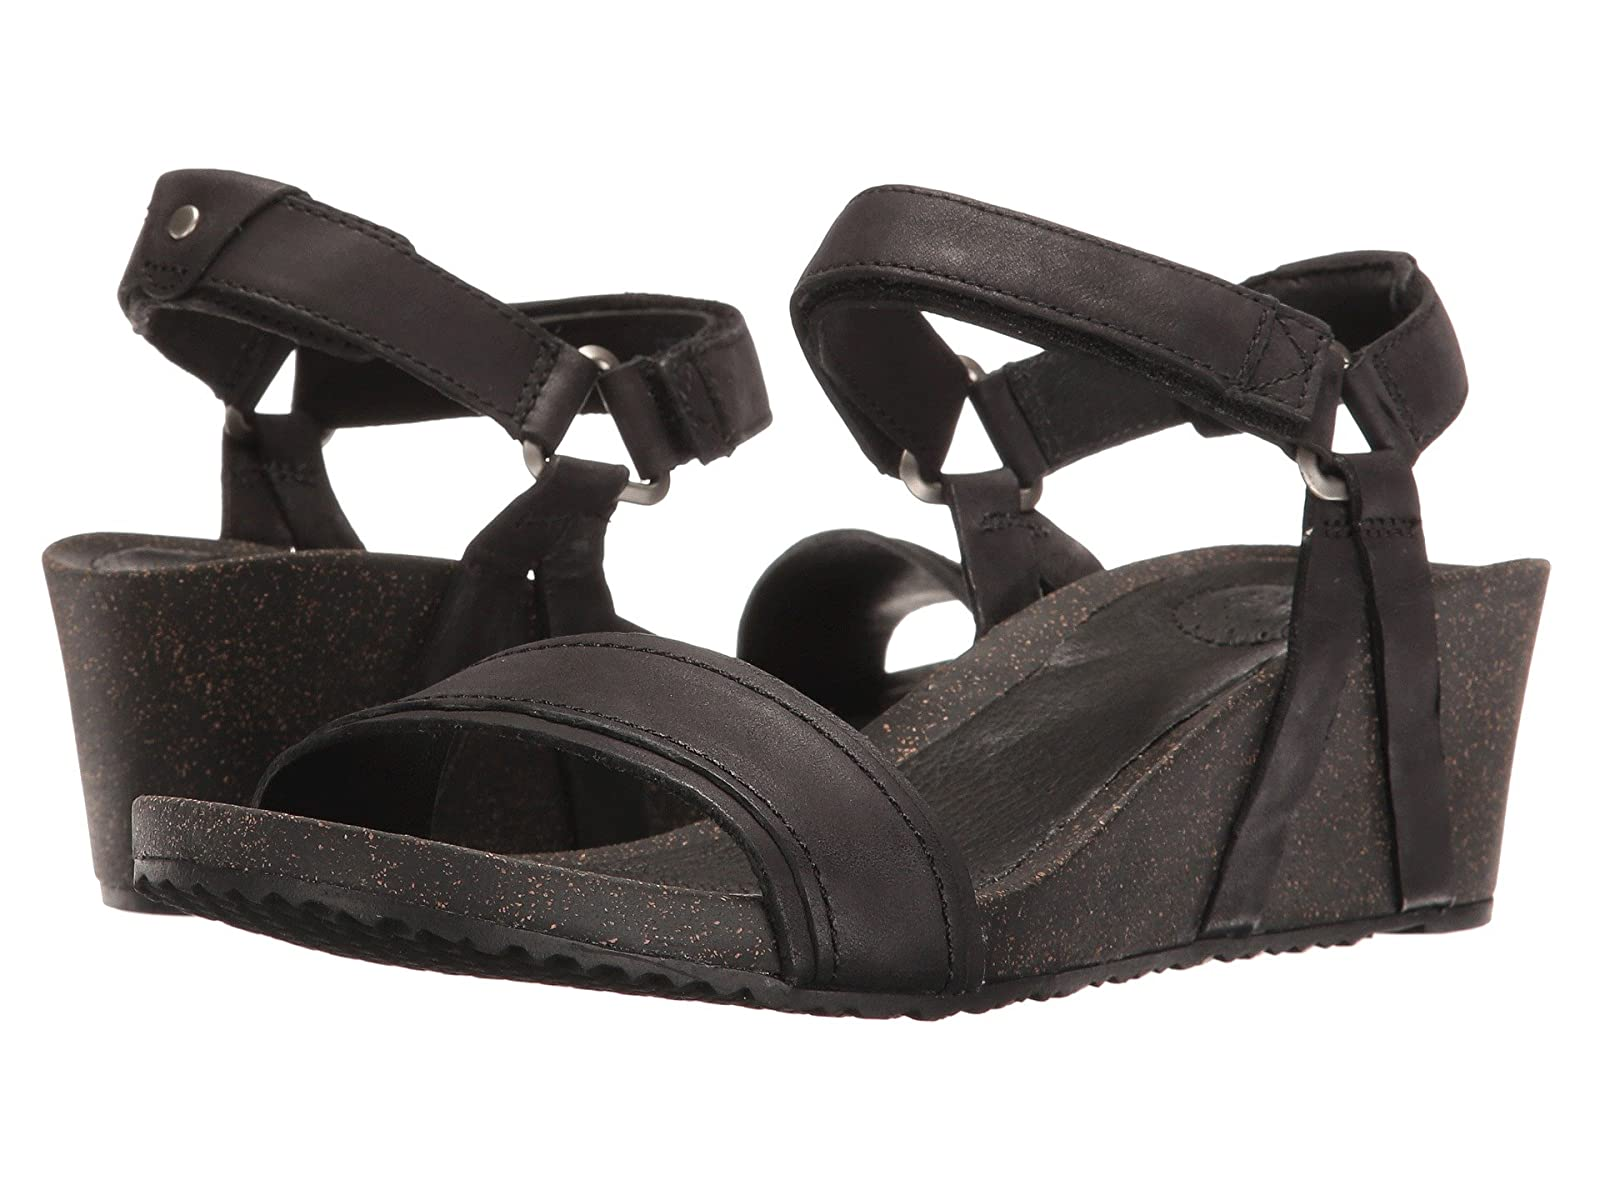 Teva Ysidro Stitch WedgeAtmospheric grades have affordable shoes